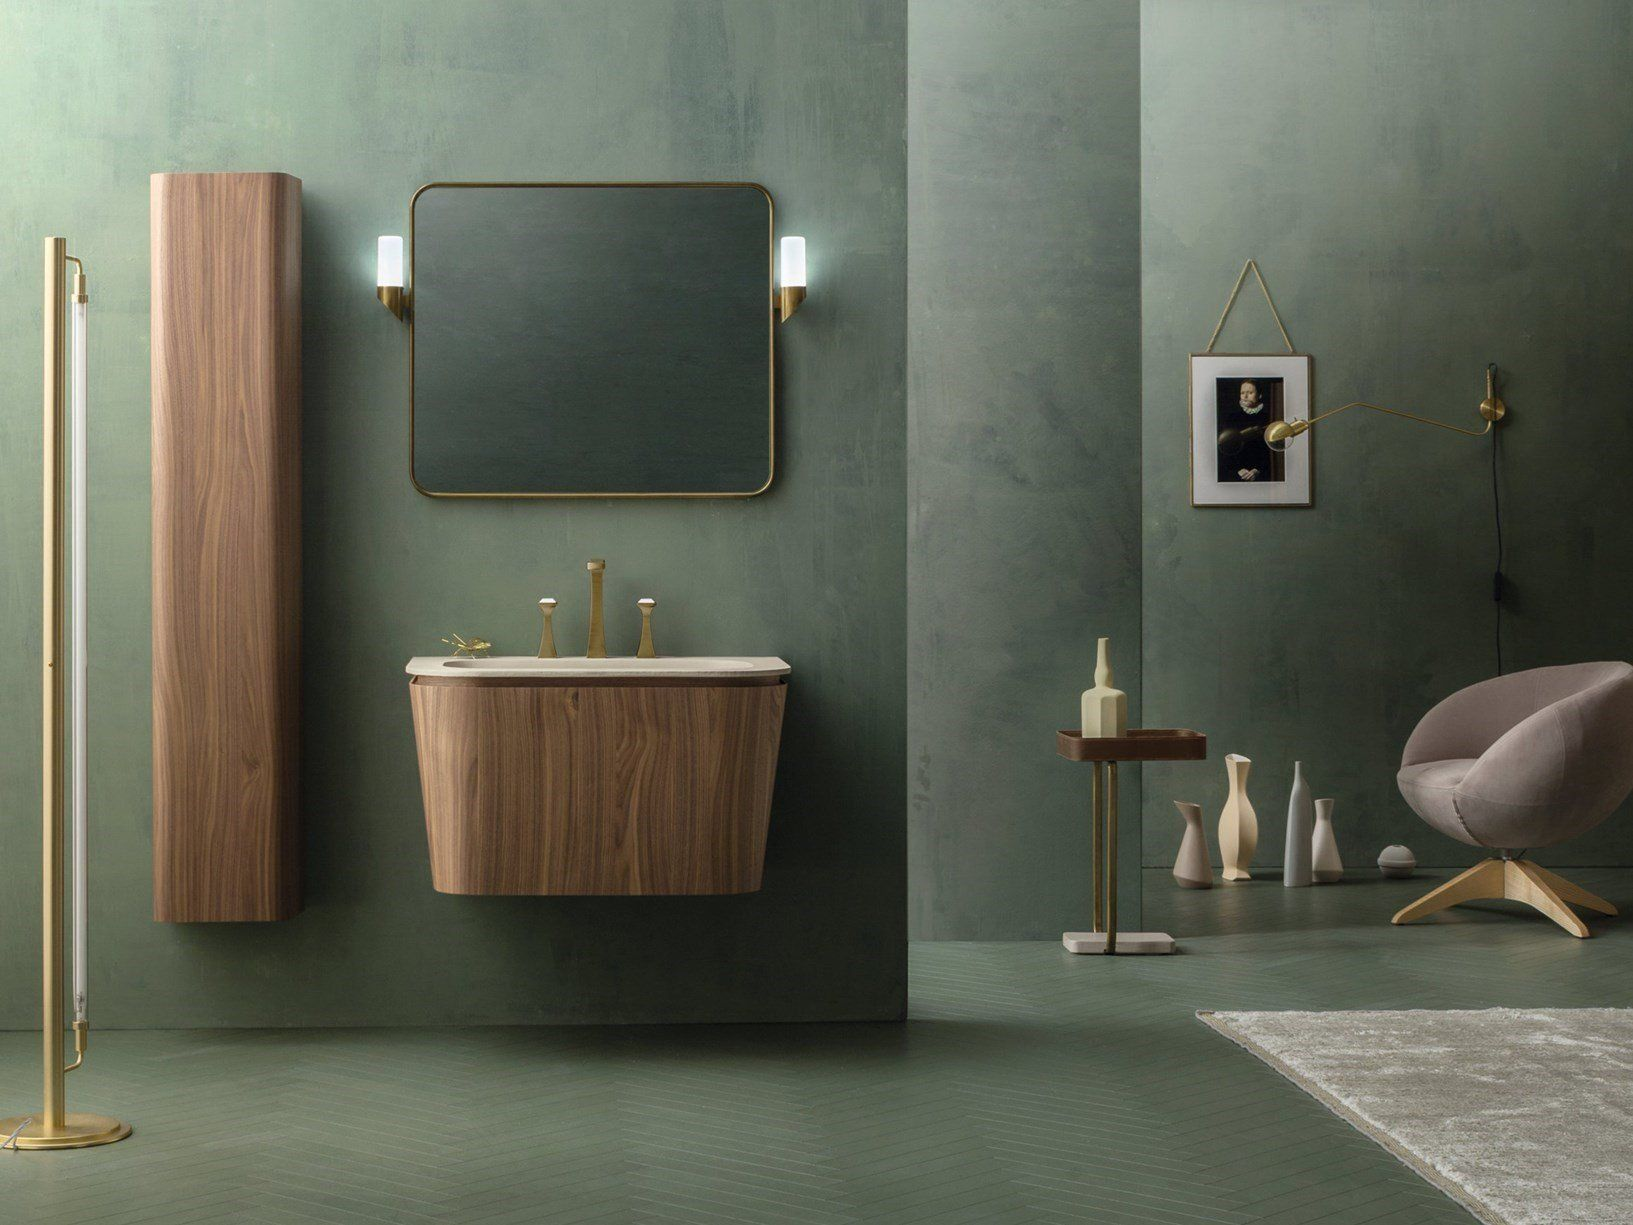 Mobili Bagno Art Deco.Suede Bathroom Inspired By Art Deco Style